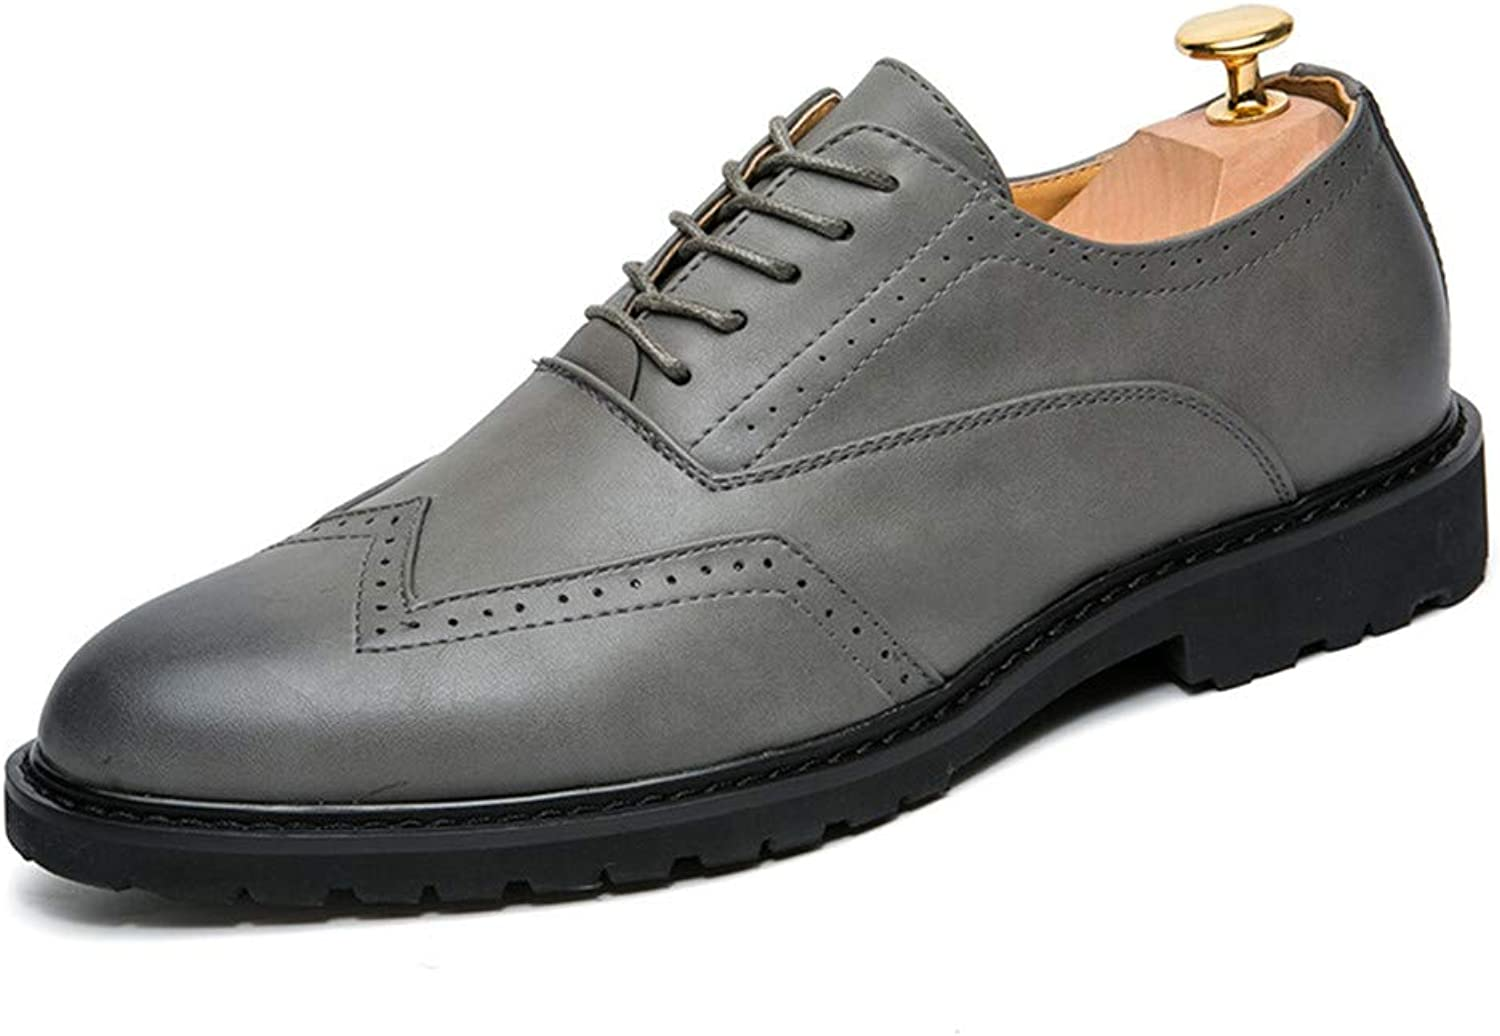 XHD-Men's shoes Men's Classico Business Oxford Casual Fashion PU Leather Anti-Skid Breathable Brogue shoes